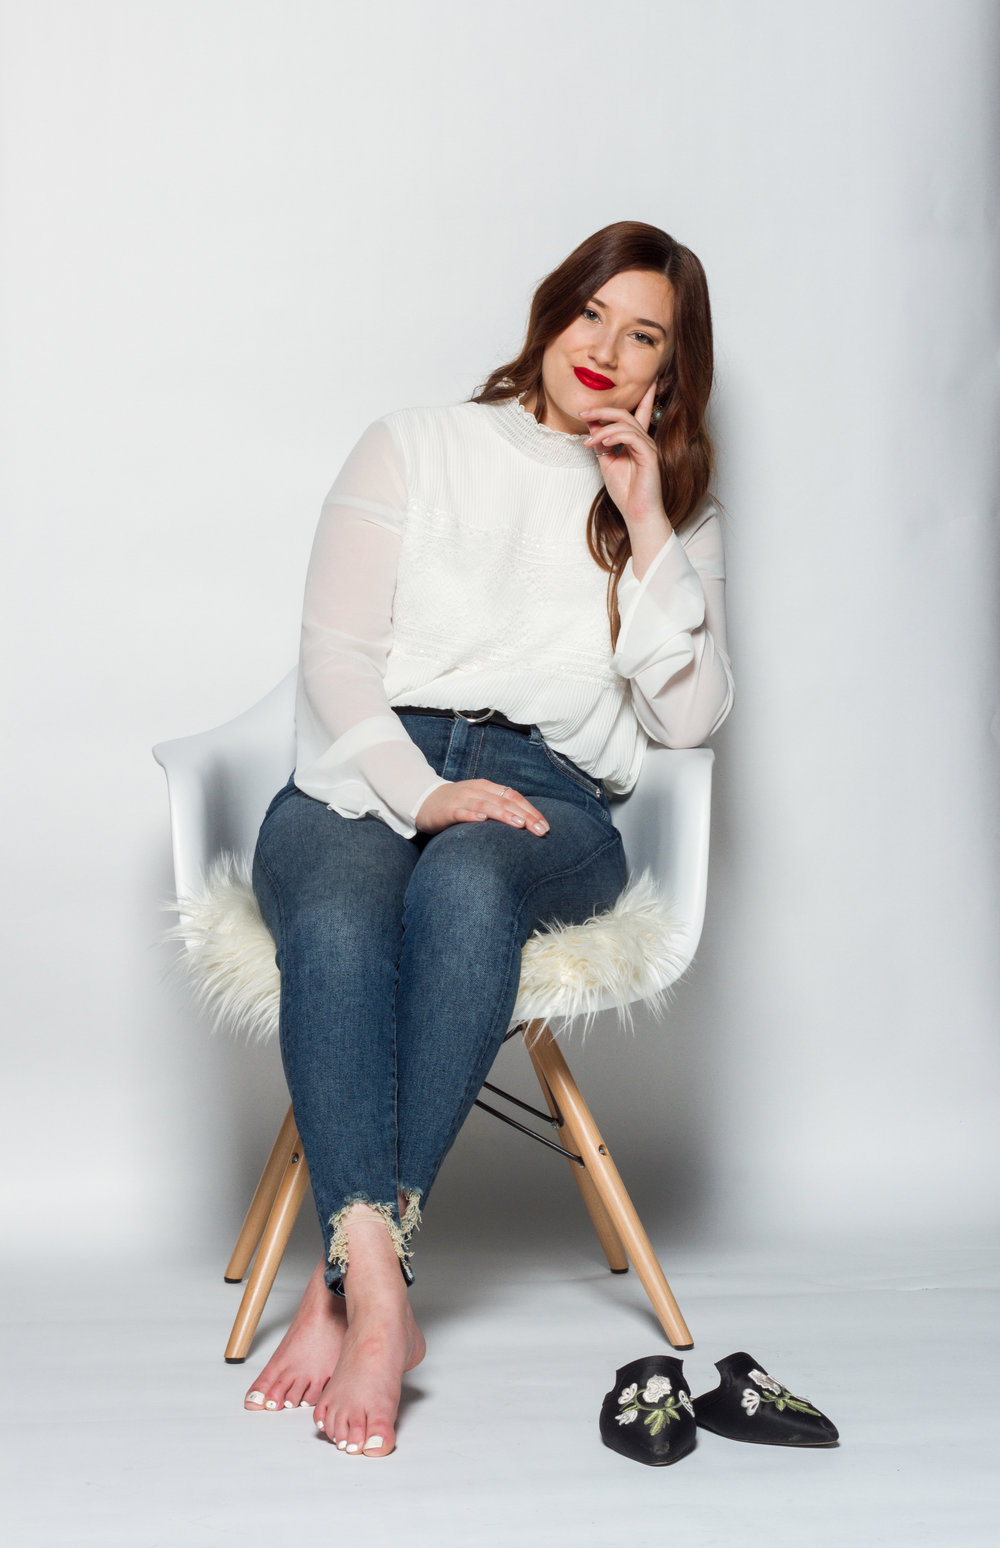 about jacqueline - After spending several years exploring many different facets of the fashion and social media industries, Jacqueline decided to merge her creative passions into creating JMK Media.Read More